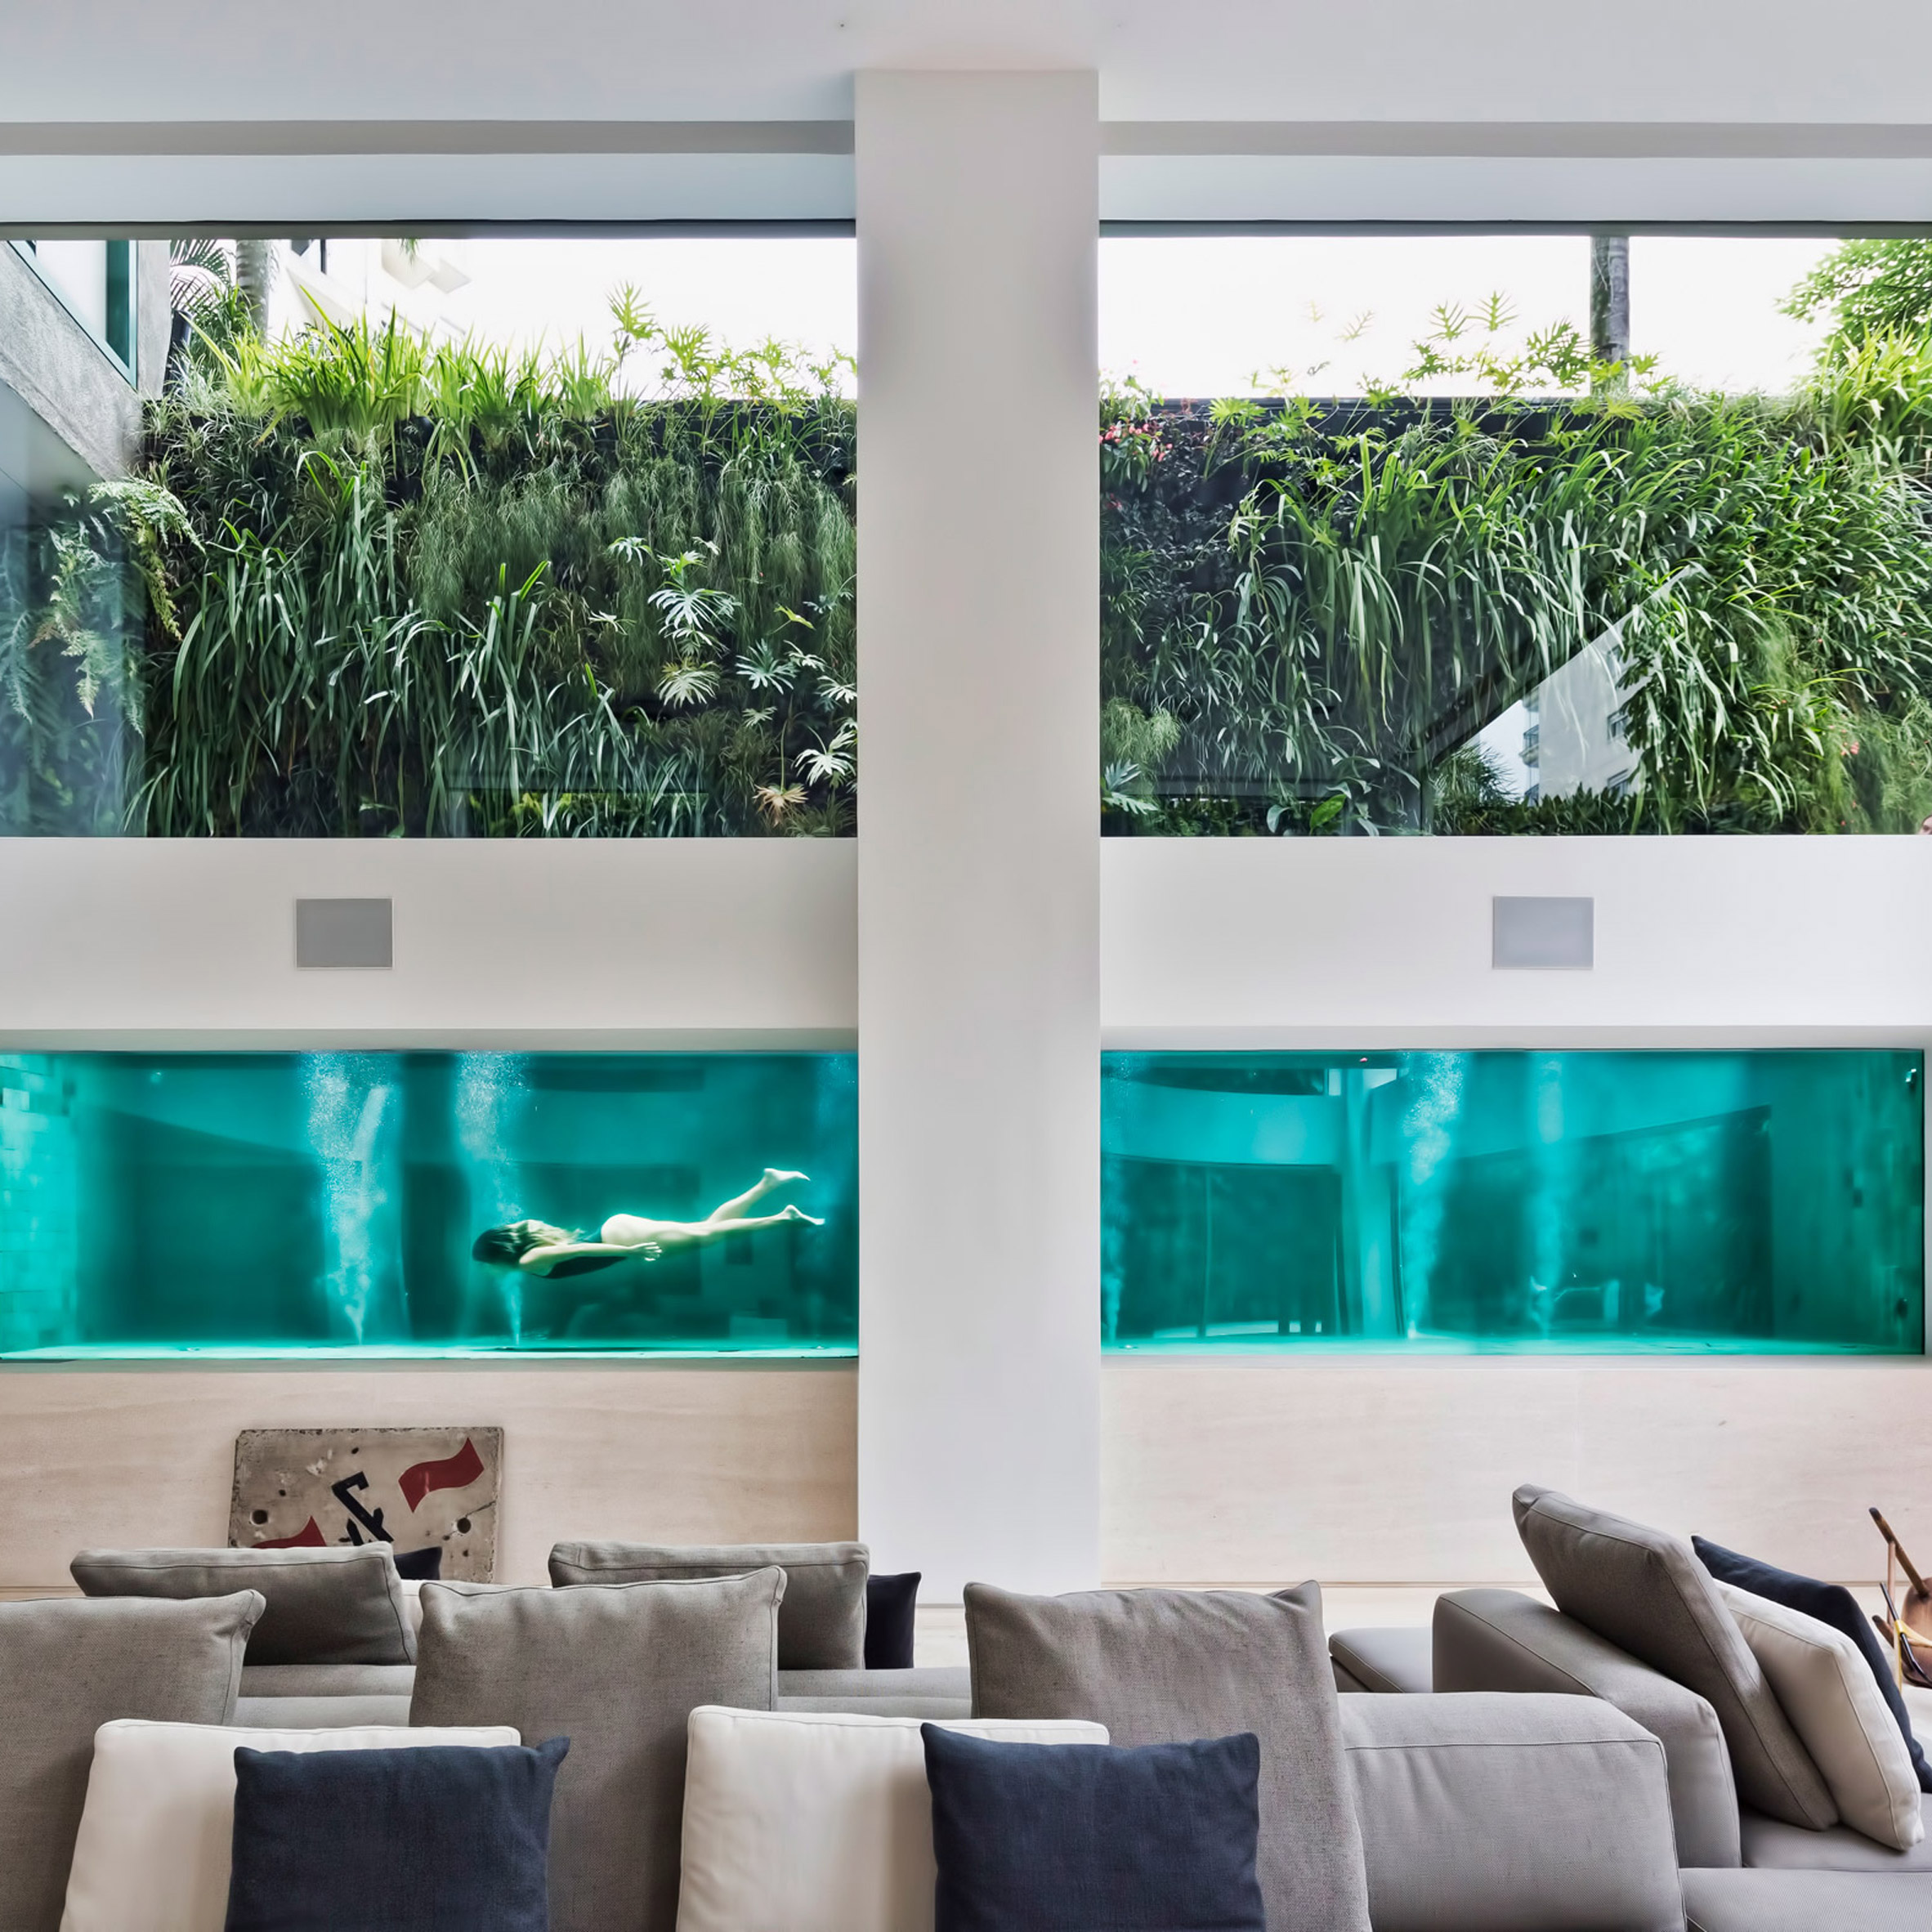 Architectural swimming pools: Panorama by Fernanda Marques